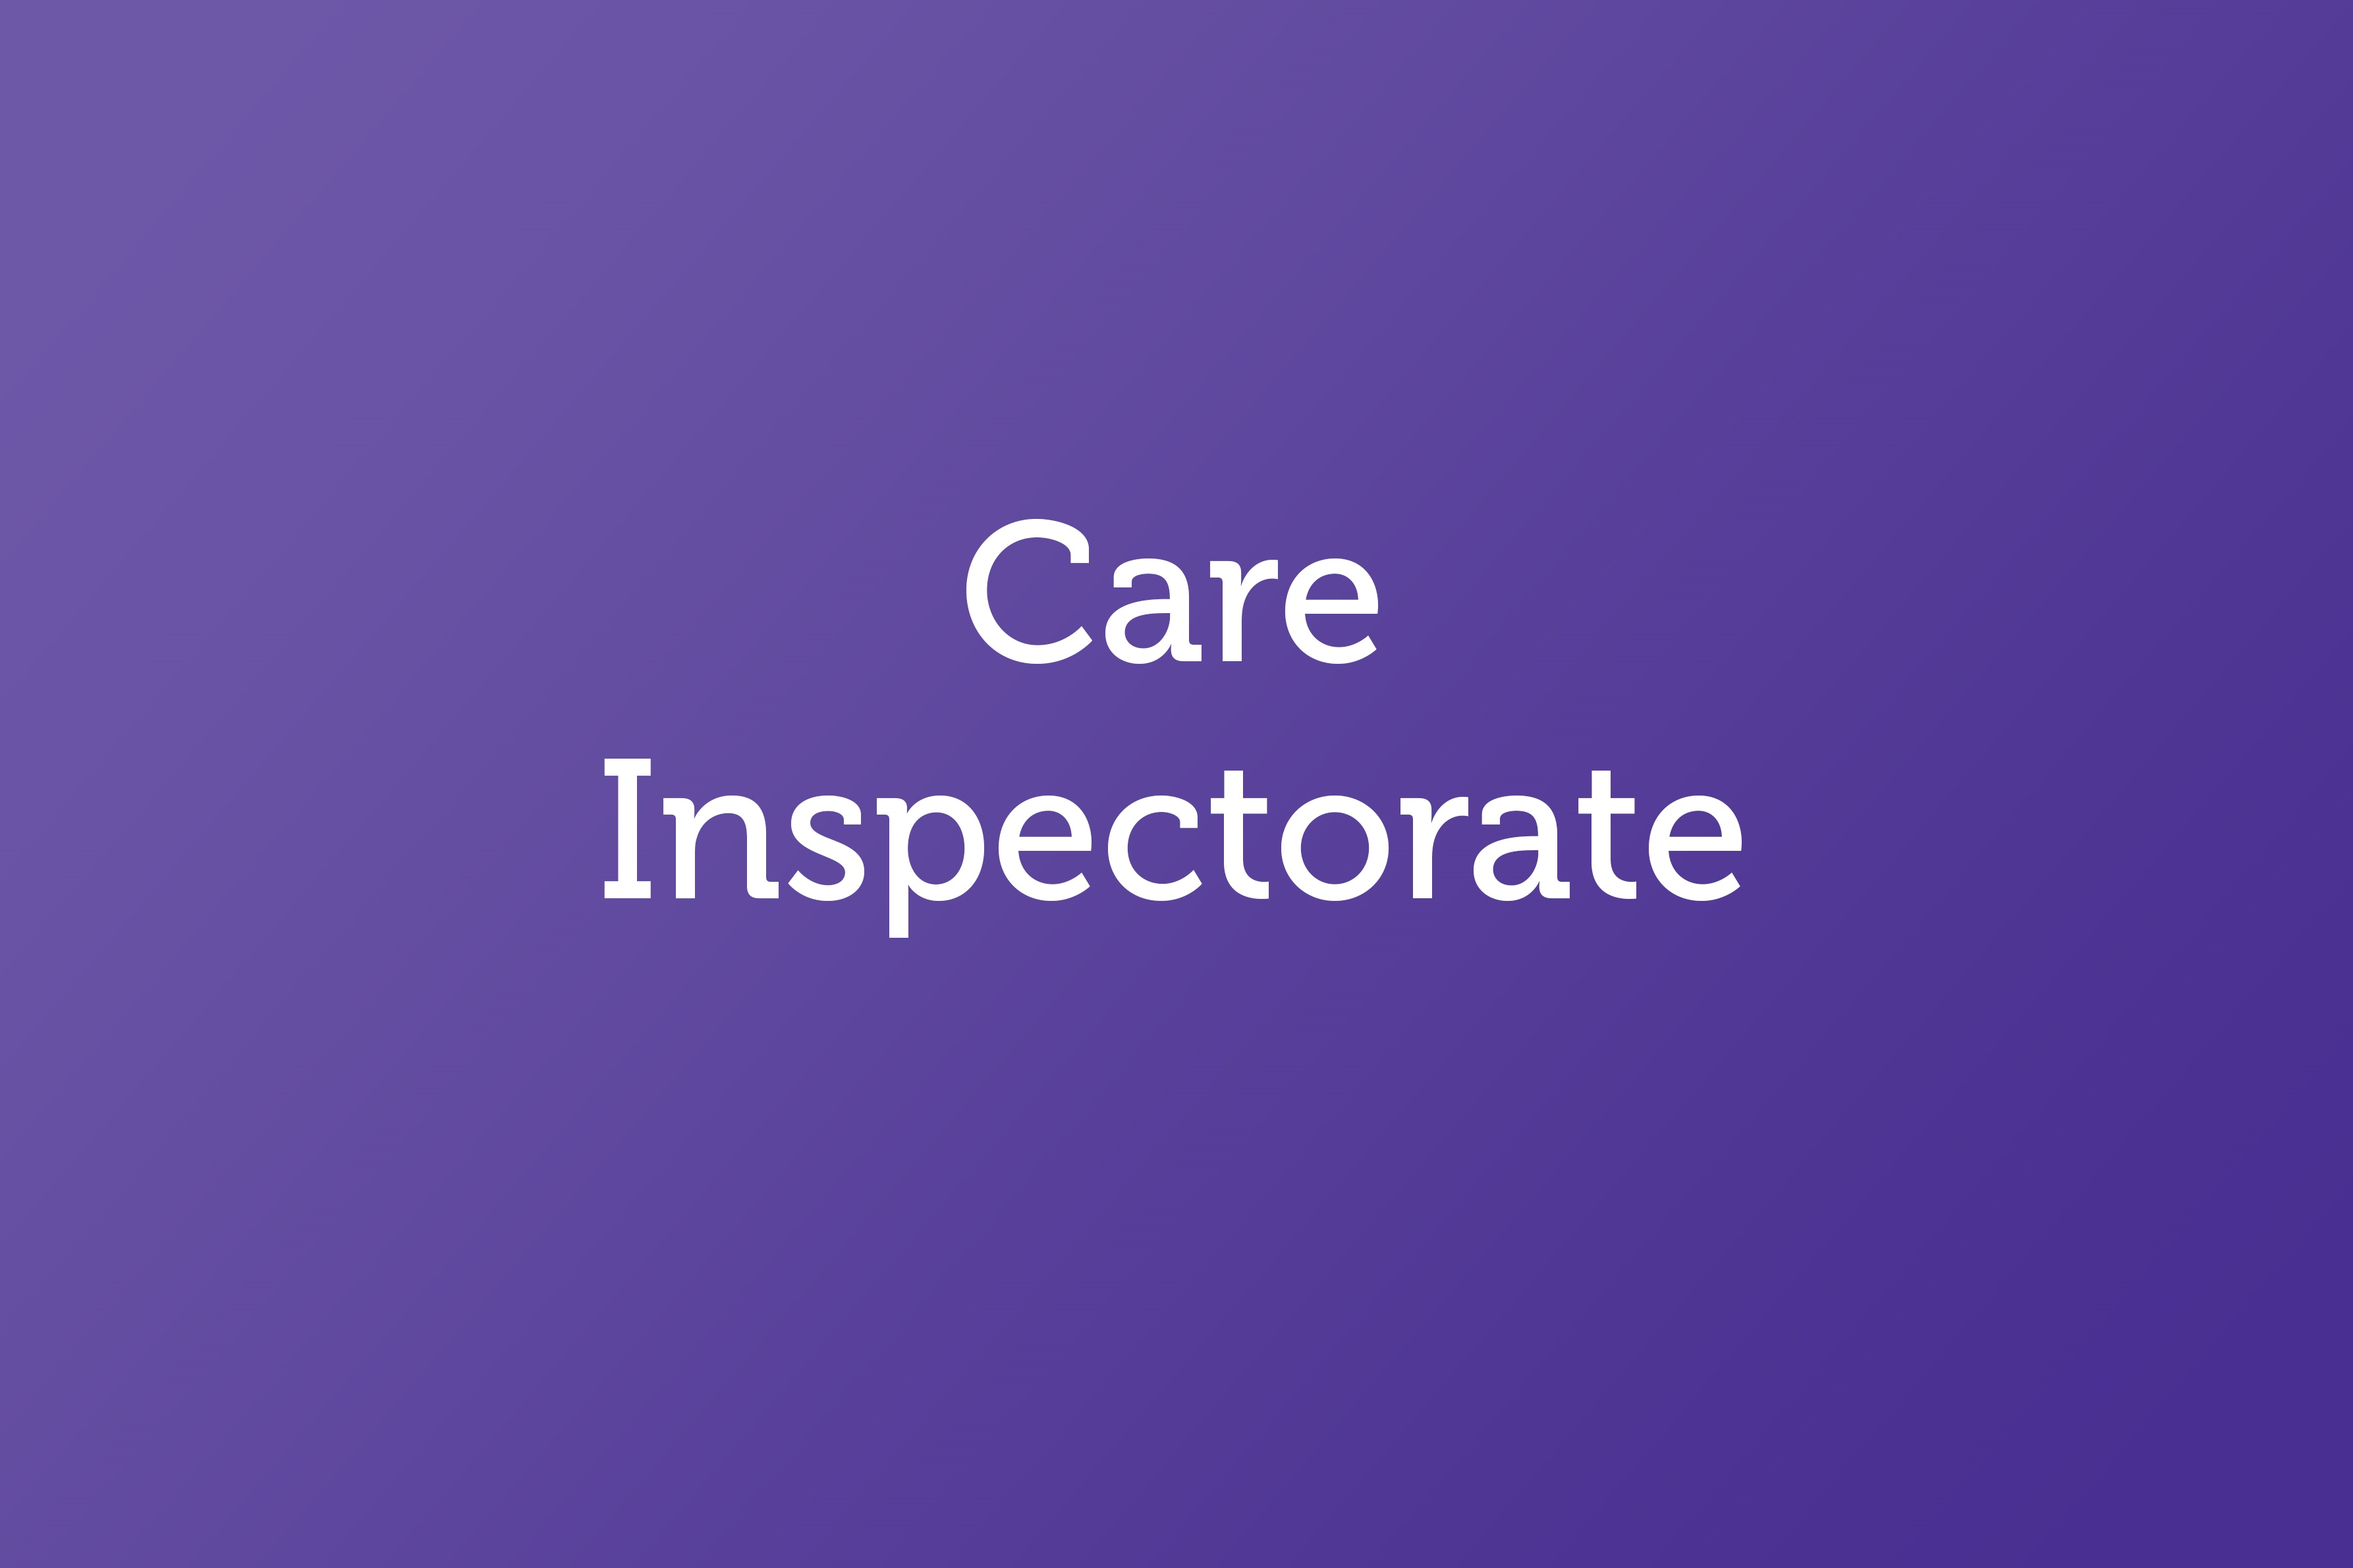 Care Inspectorate report on inspections, 12 May 2021